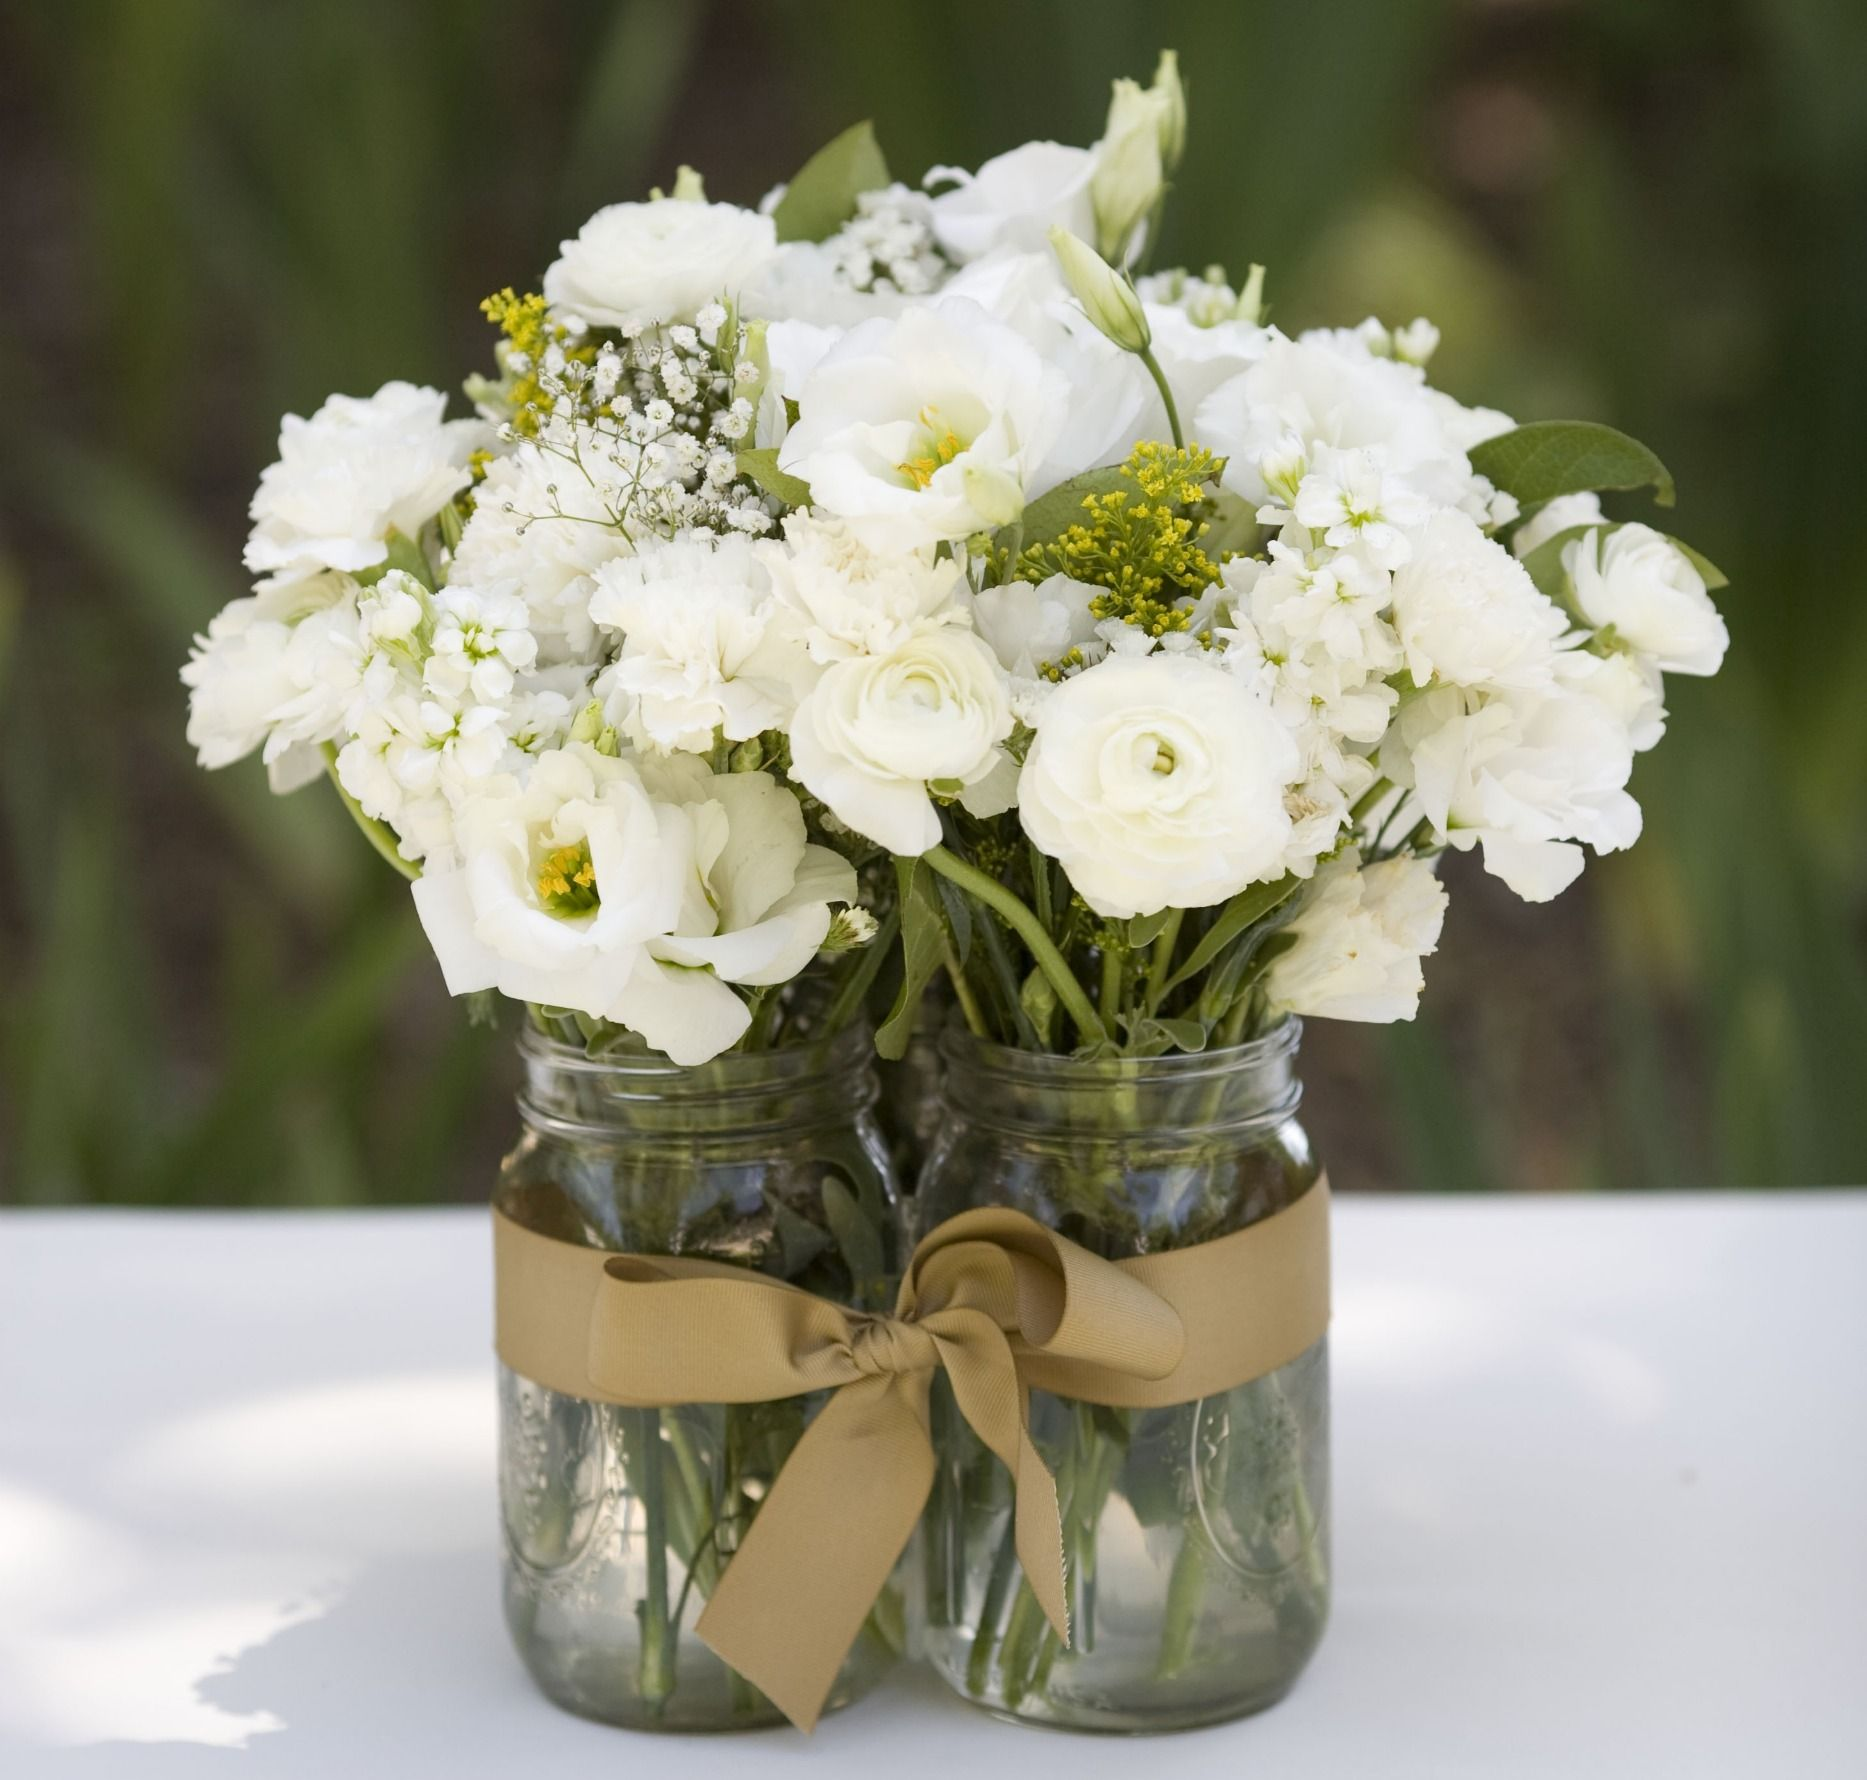 putting more than one mason jar together for a larger bouquet/centerpiece